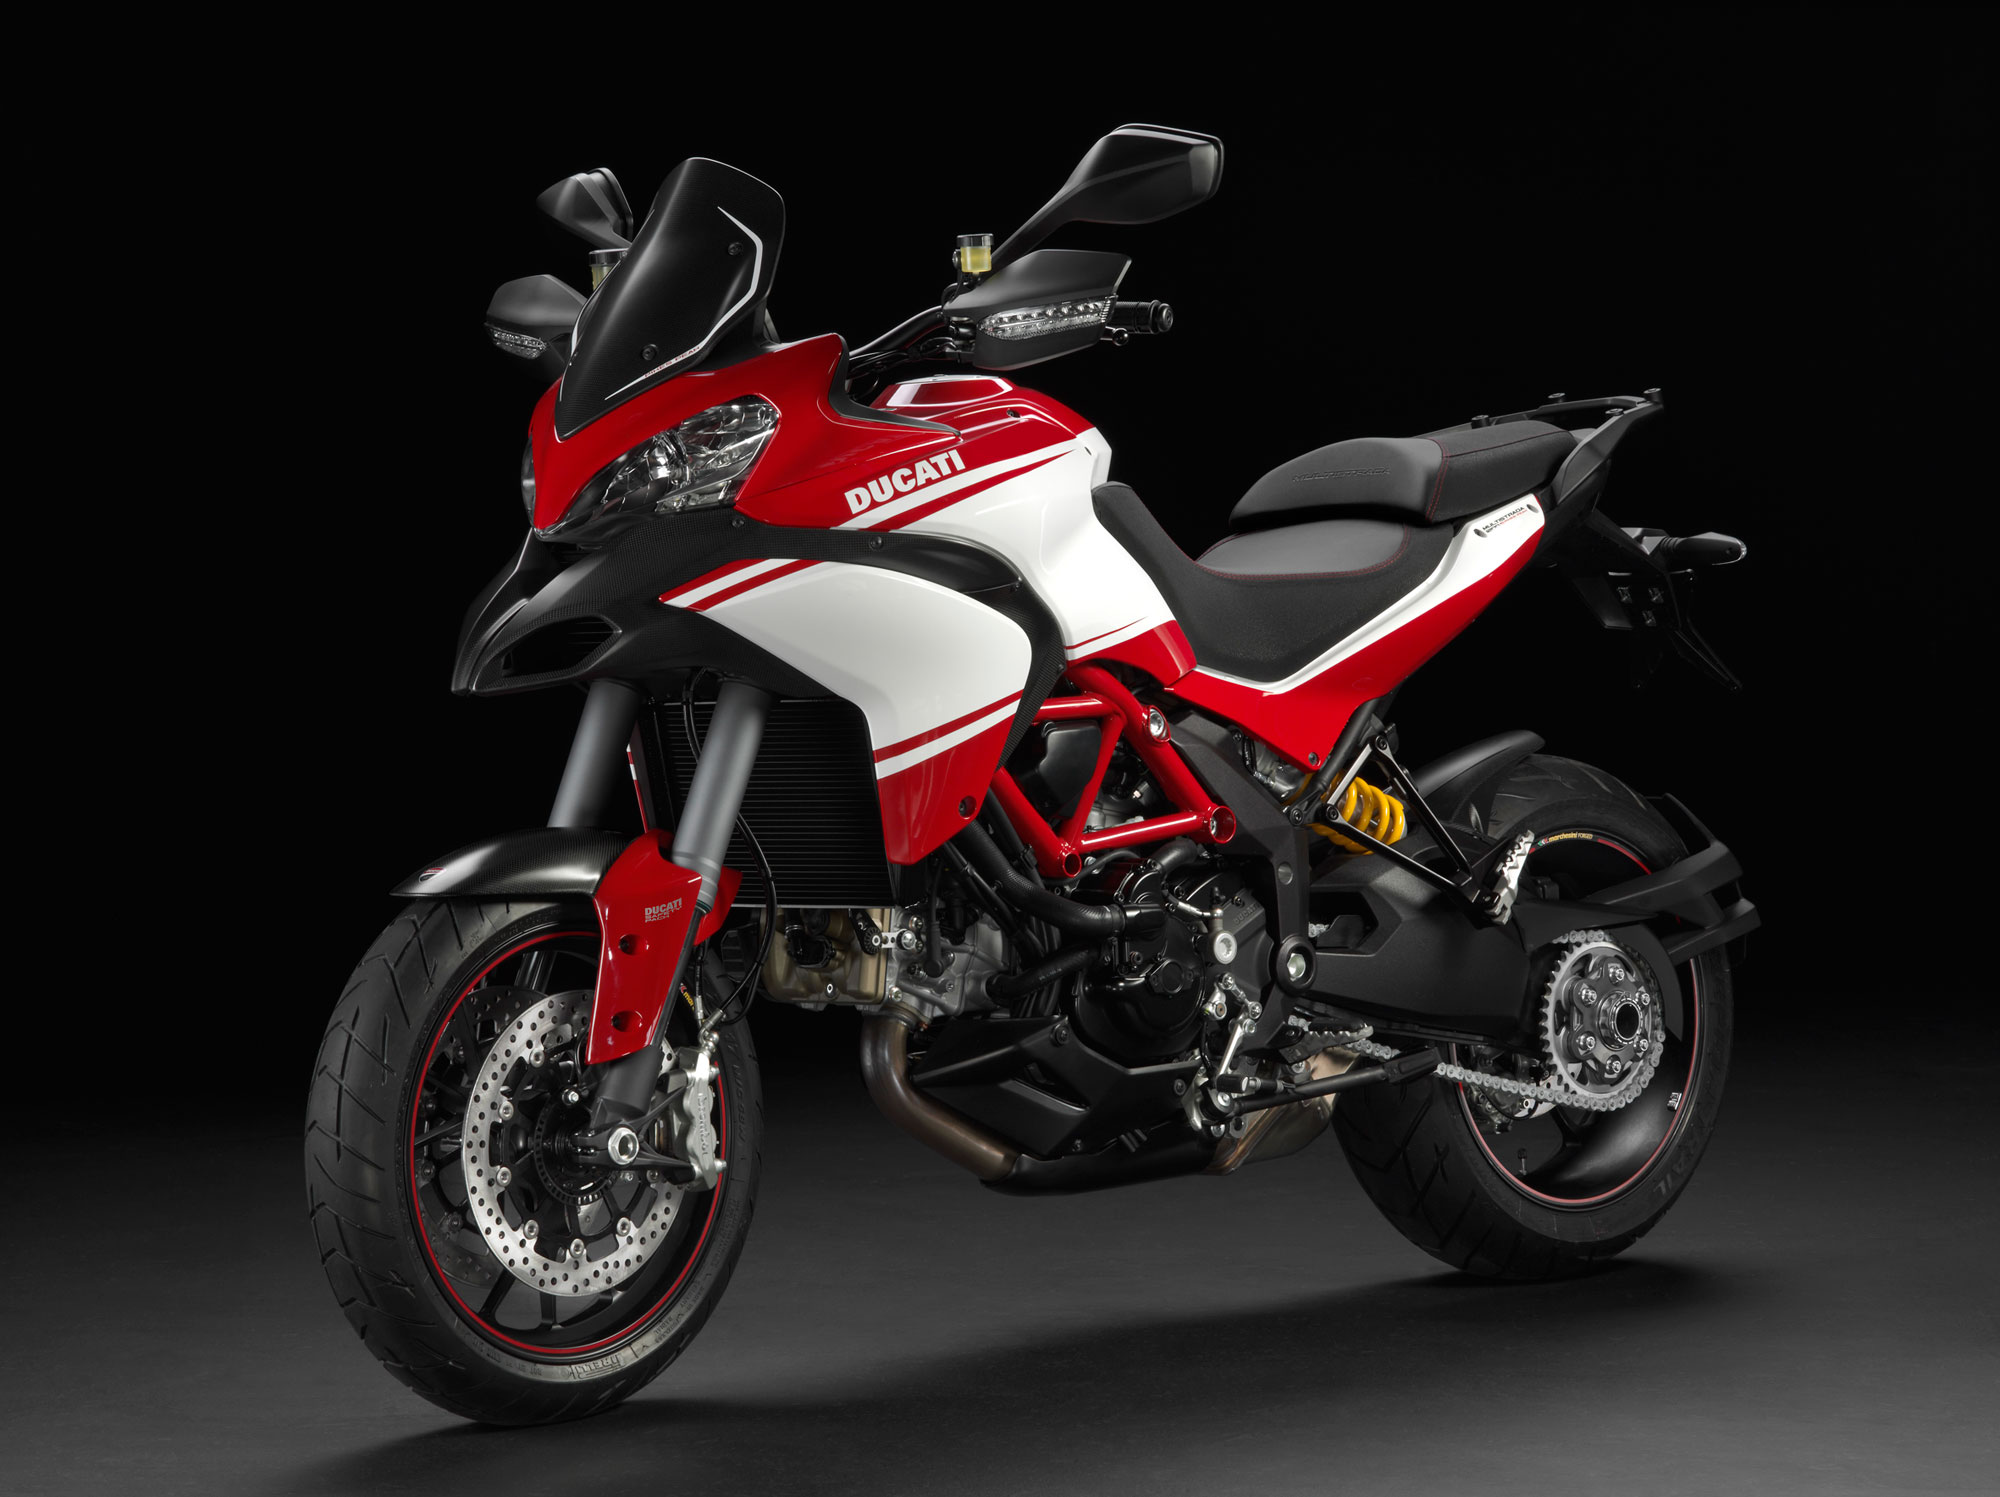 Ducati Multistrada 1200 S Pikes Peak Edition 2013 images #80019